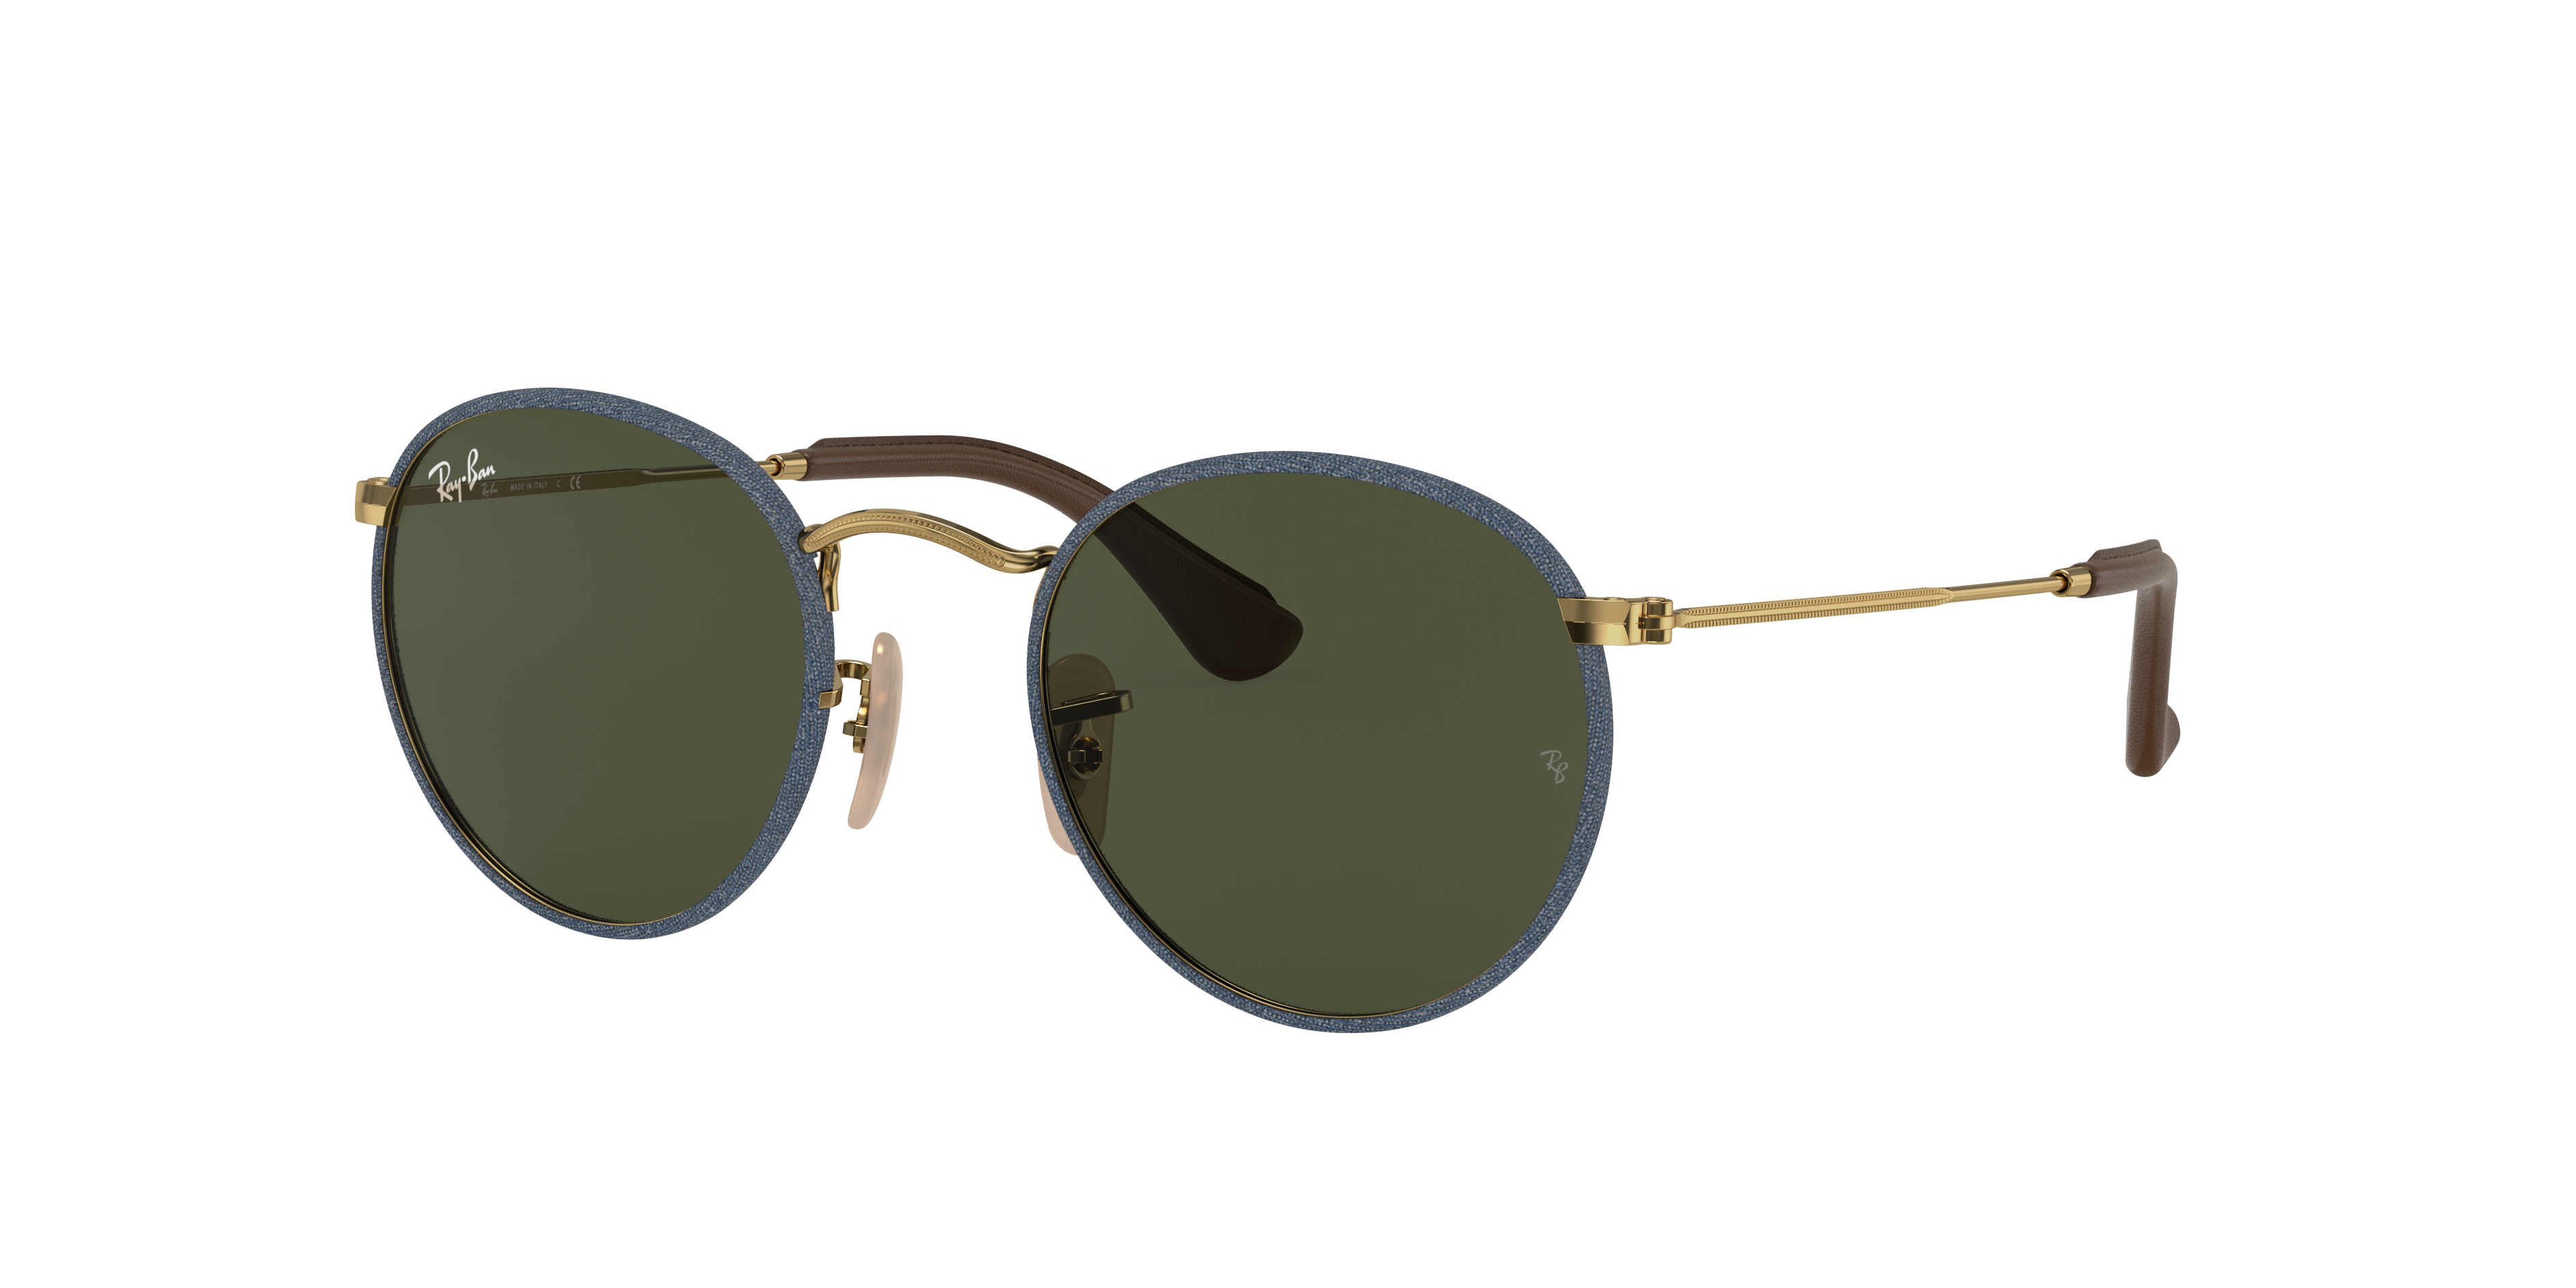 Ray-Ban Round Craft Gold, Green Lenses - RB3475Q